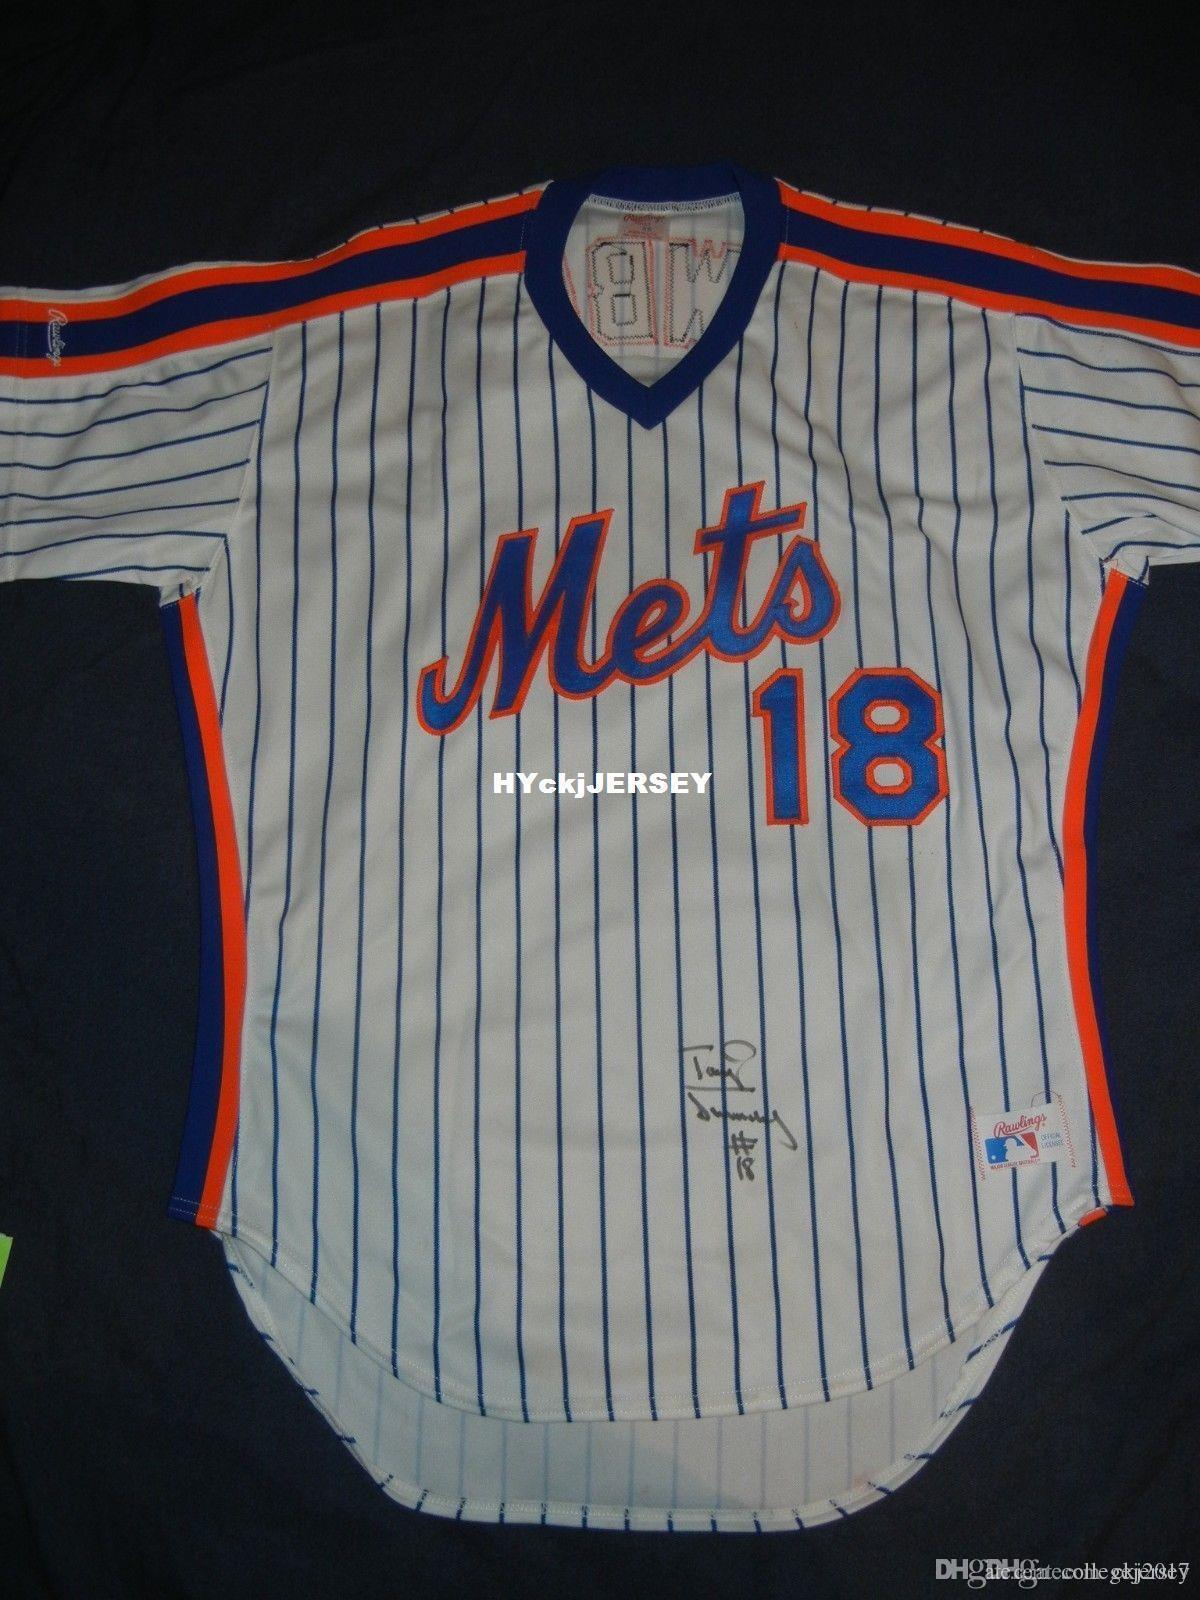 Cheap Rawlings Retro # 18 Darryl Strawberry NEW YORK NY Jersey 46 Autograph COA de 1986 camisola Mens costurado beisebol Assinado